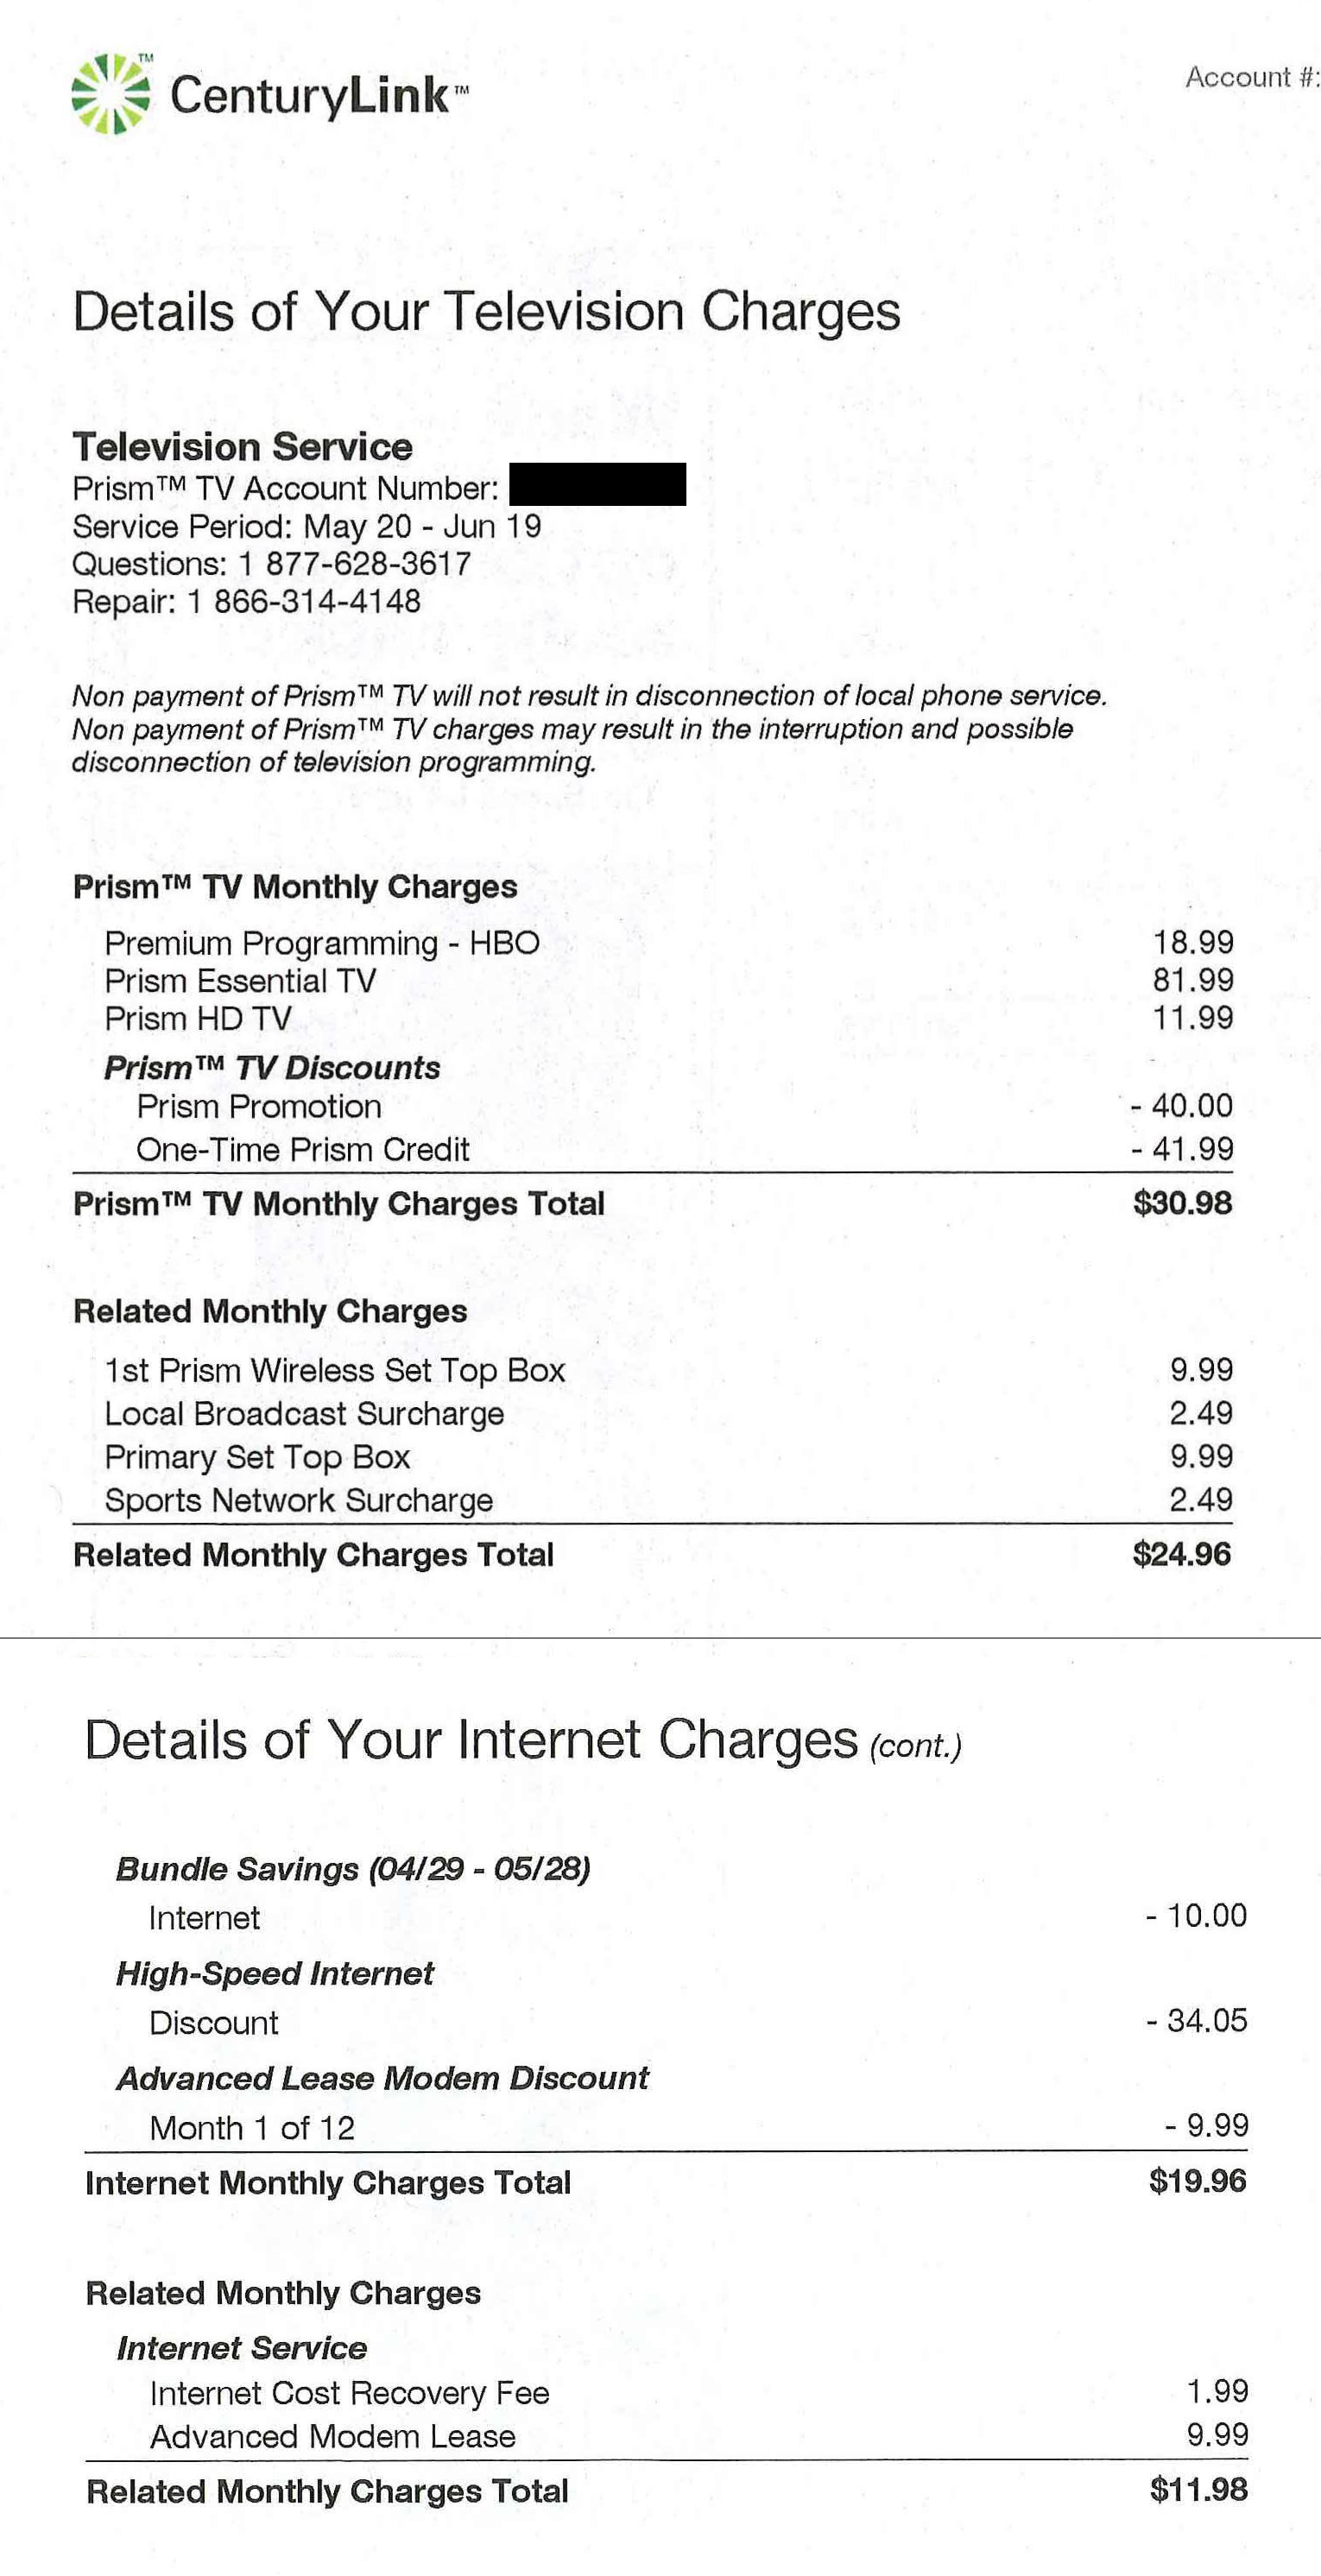 Screenshot of CenturLink bill showing additional charges